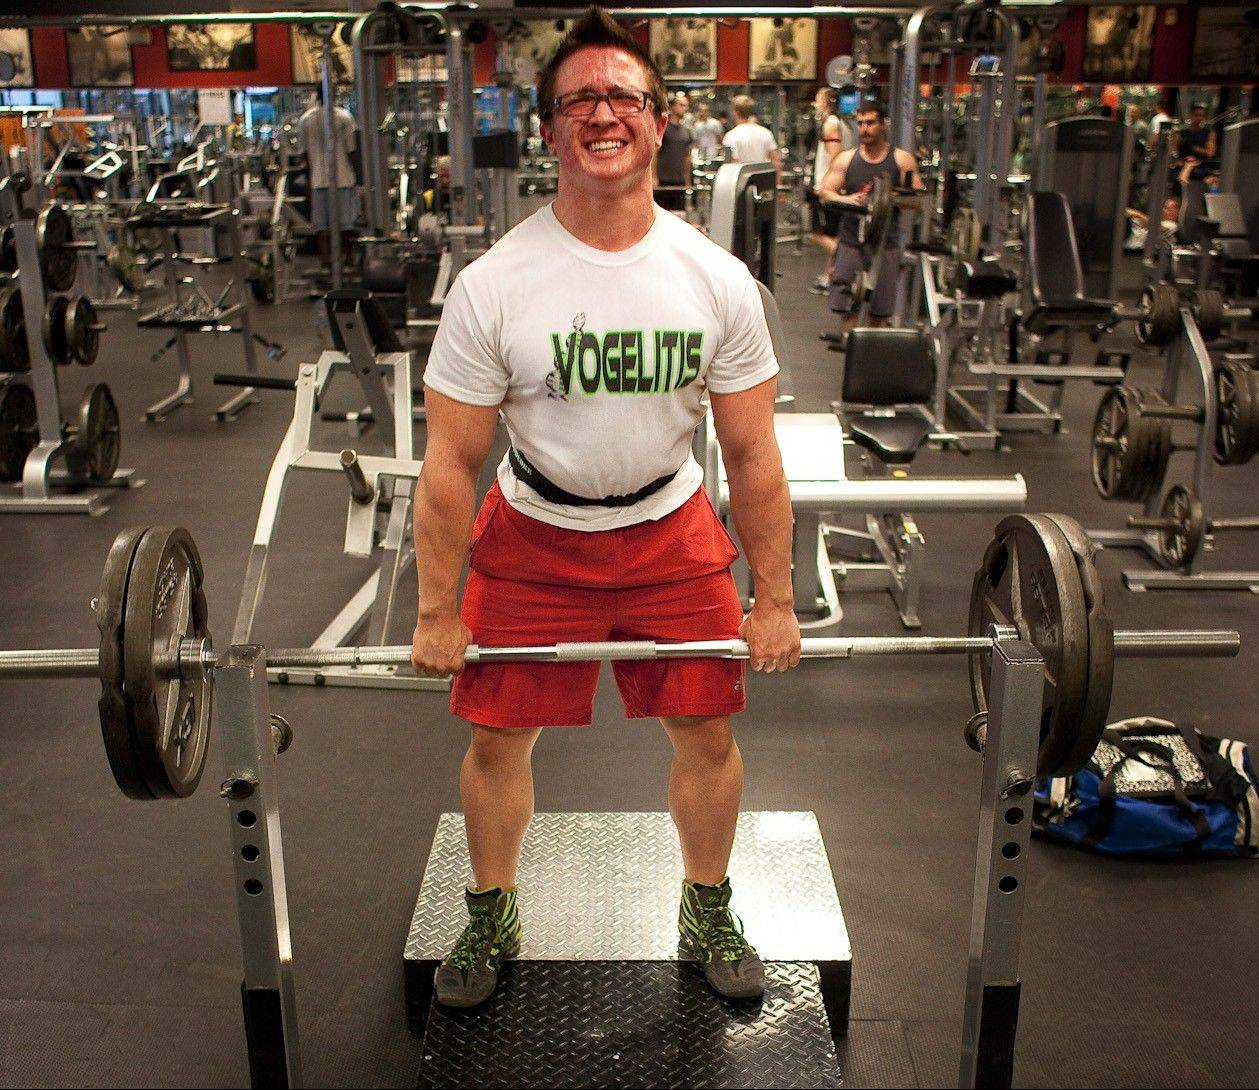 Josh Vogel, who participated in his first power-lifting contest in January, works out at a gym.